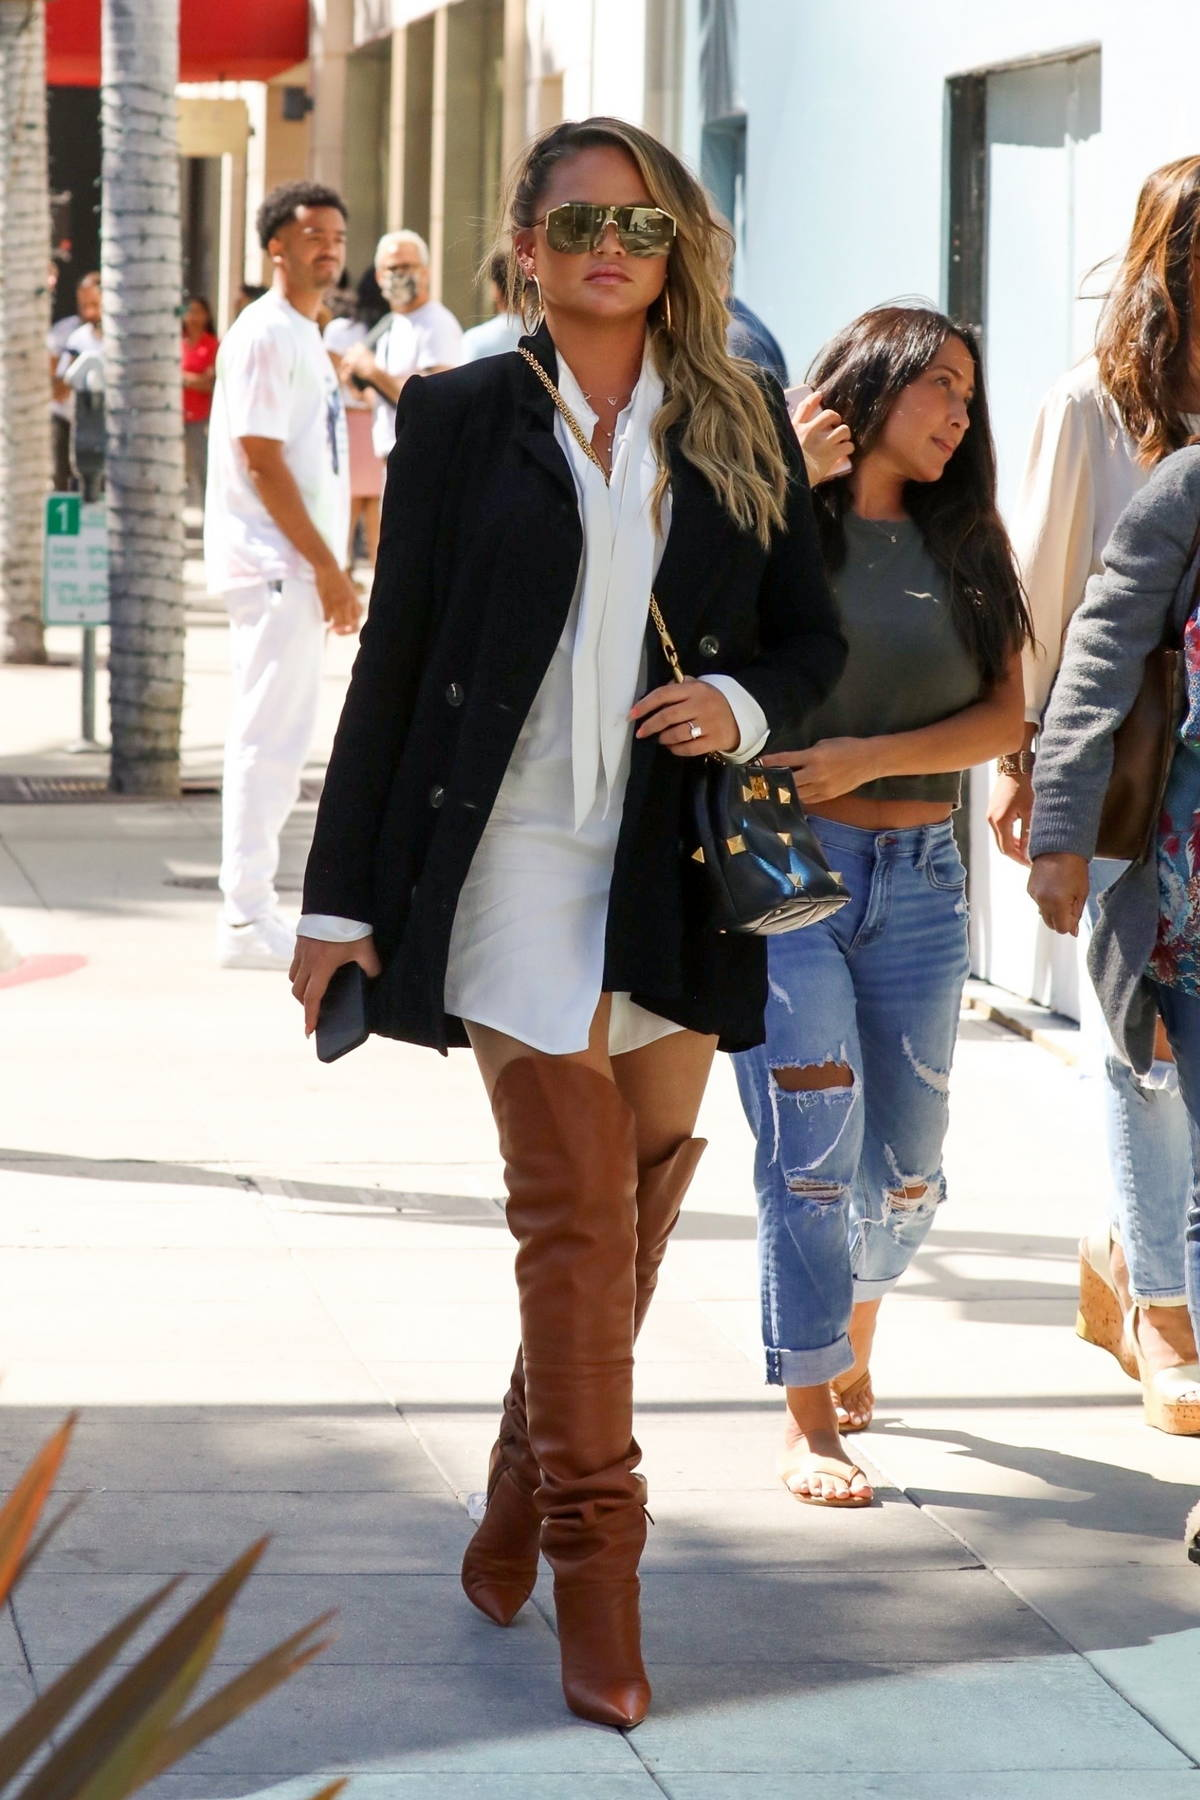 Chrissy Teigen rocks a pair of thigh-high boots while out enjoying some ice cream after lunch in Studio City, California